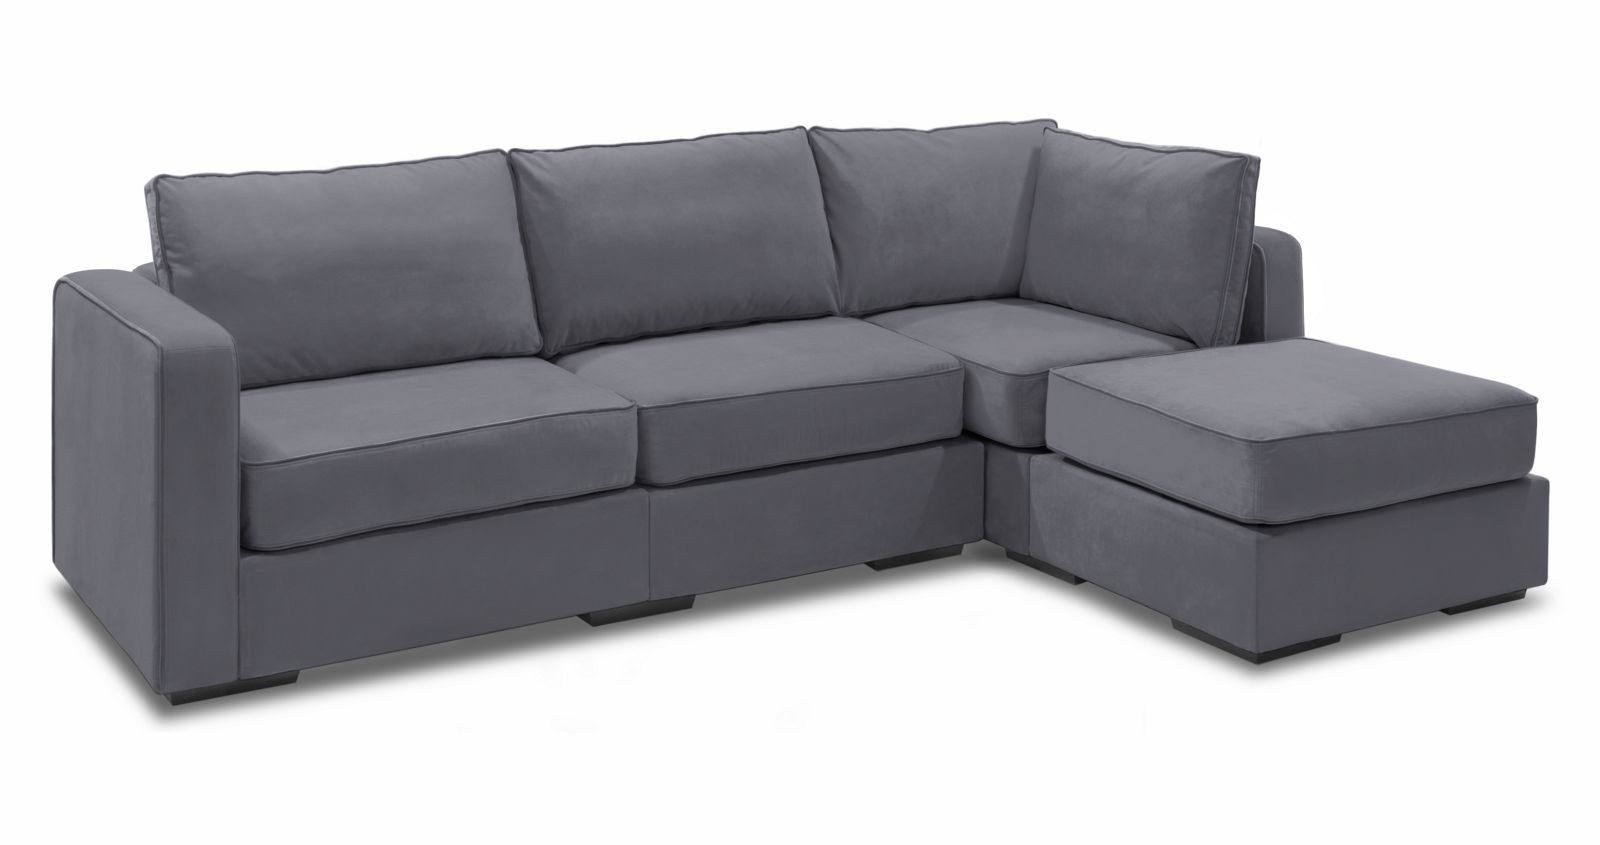 Terrific Chaise Sectional Couch 4 Seats 5 Sides Millers Esd In Ibusinesslaw Wood Chair Design Ideas Ibusinesslaworg